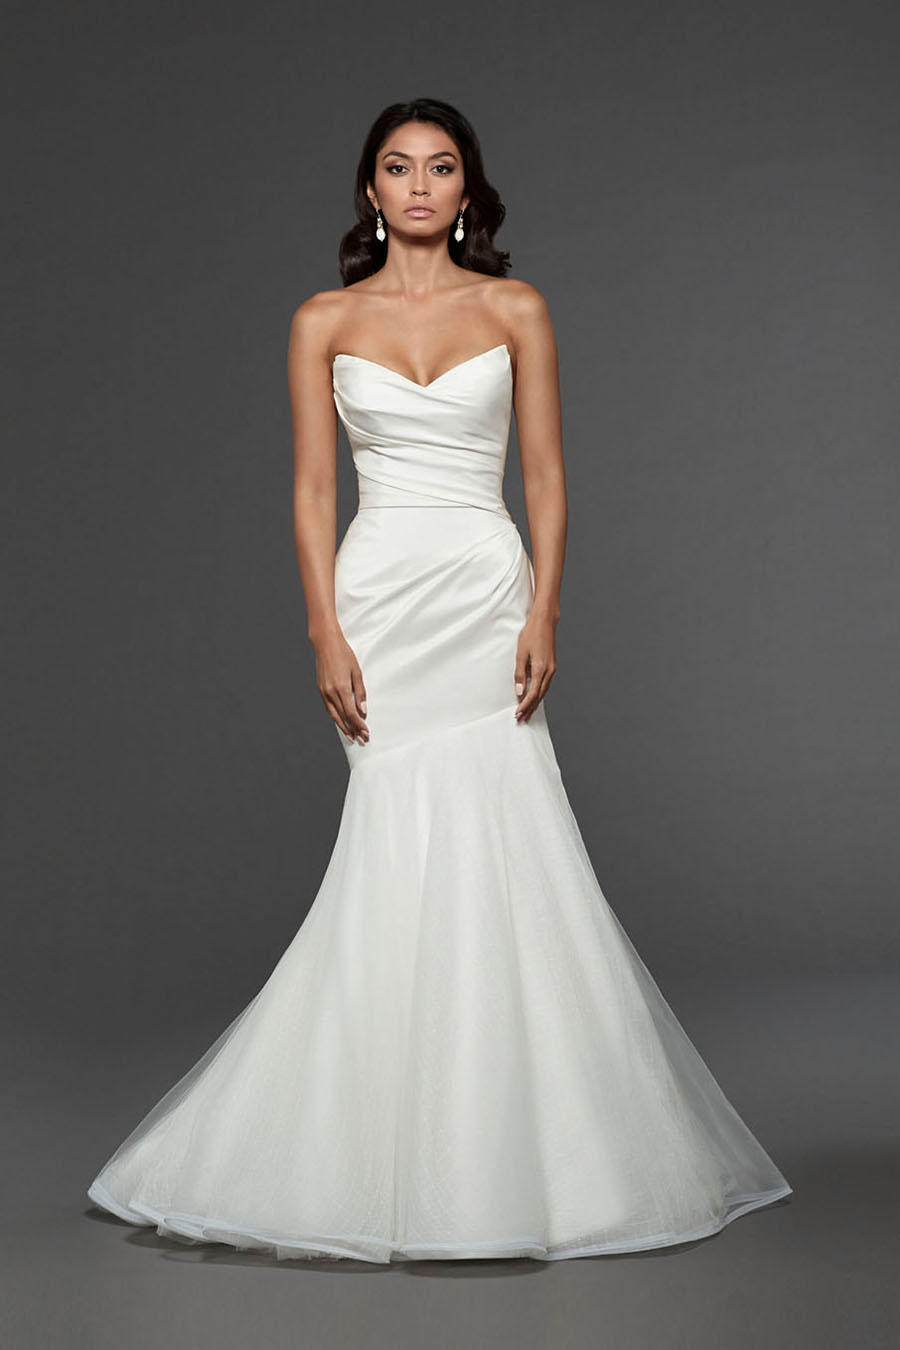 Wavy with Tulle Mermaid Wedding Dress